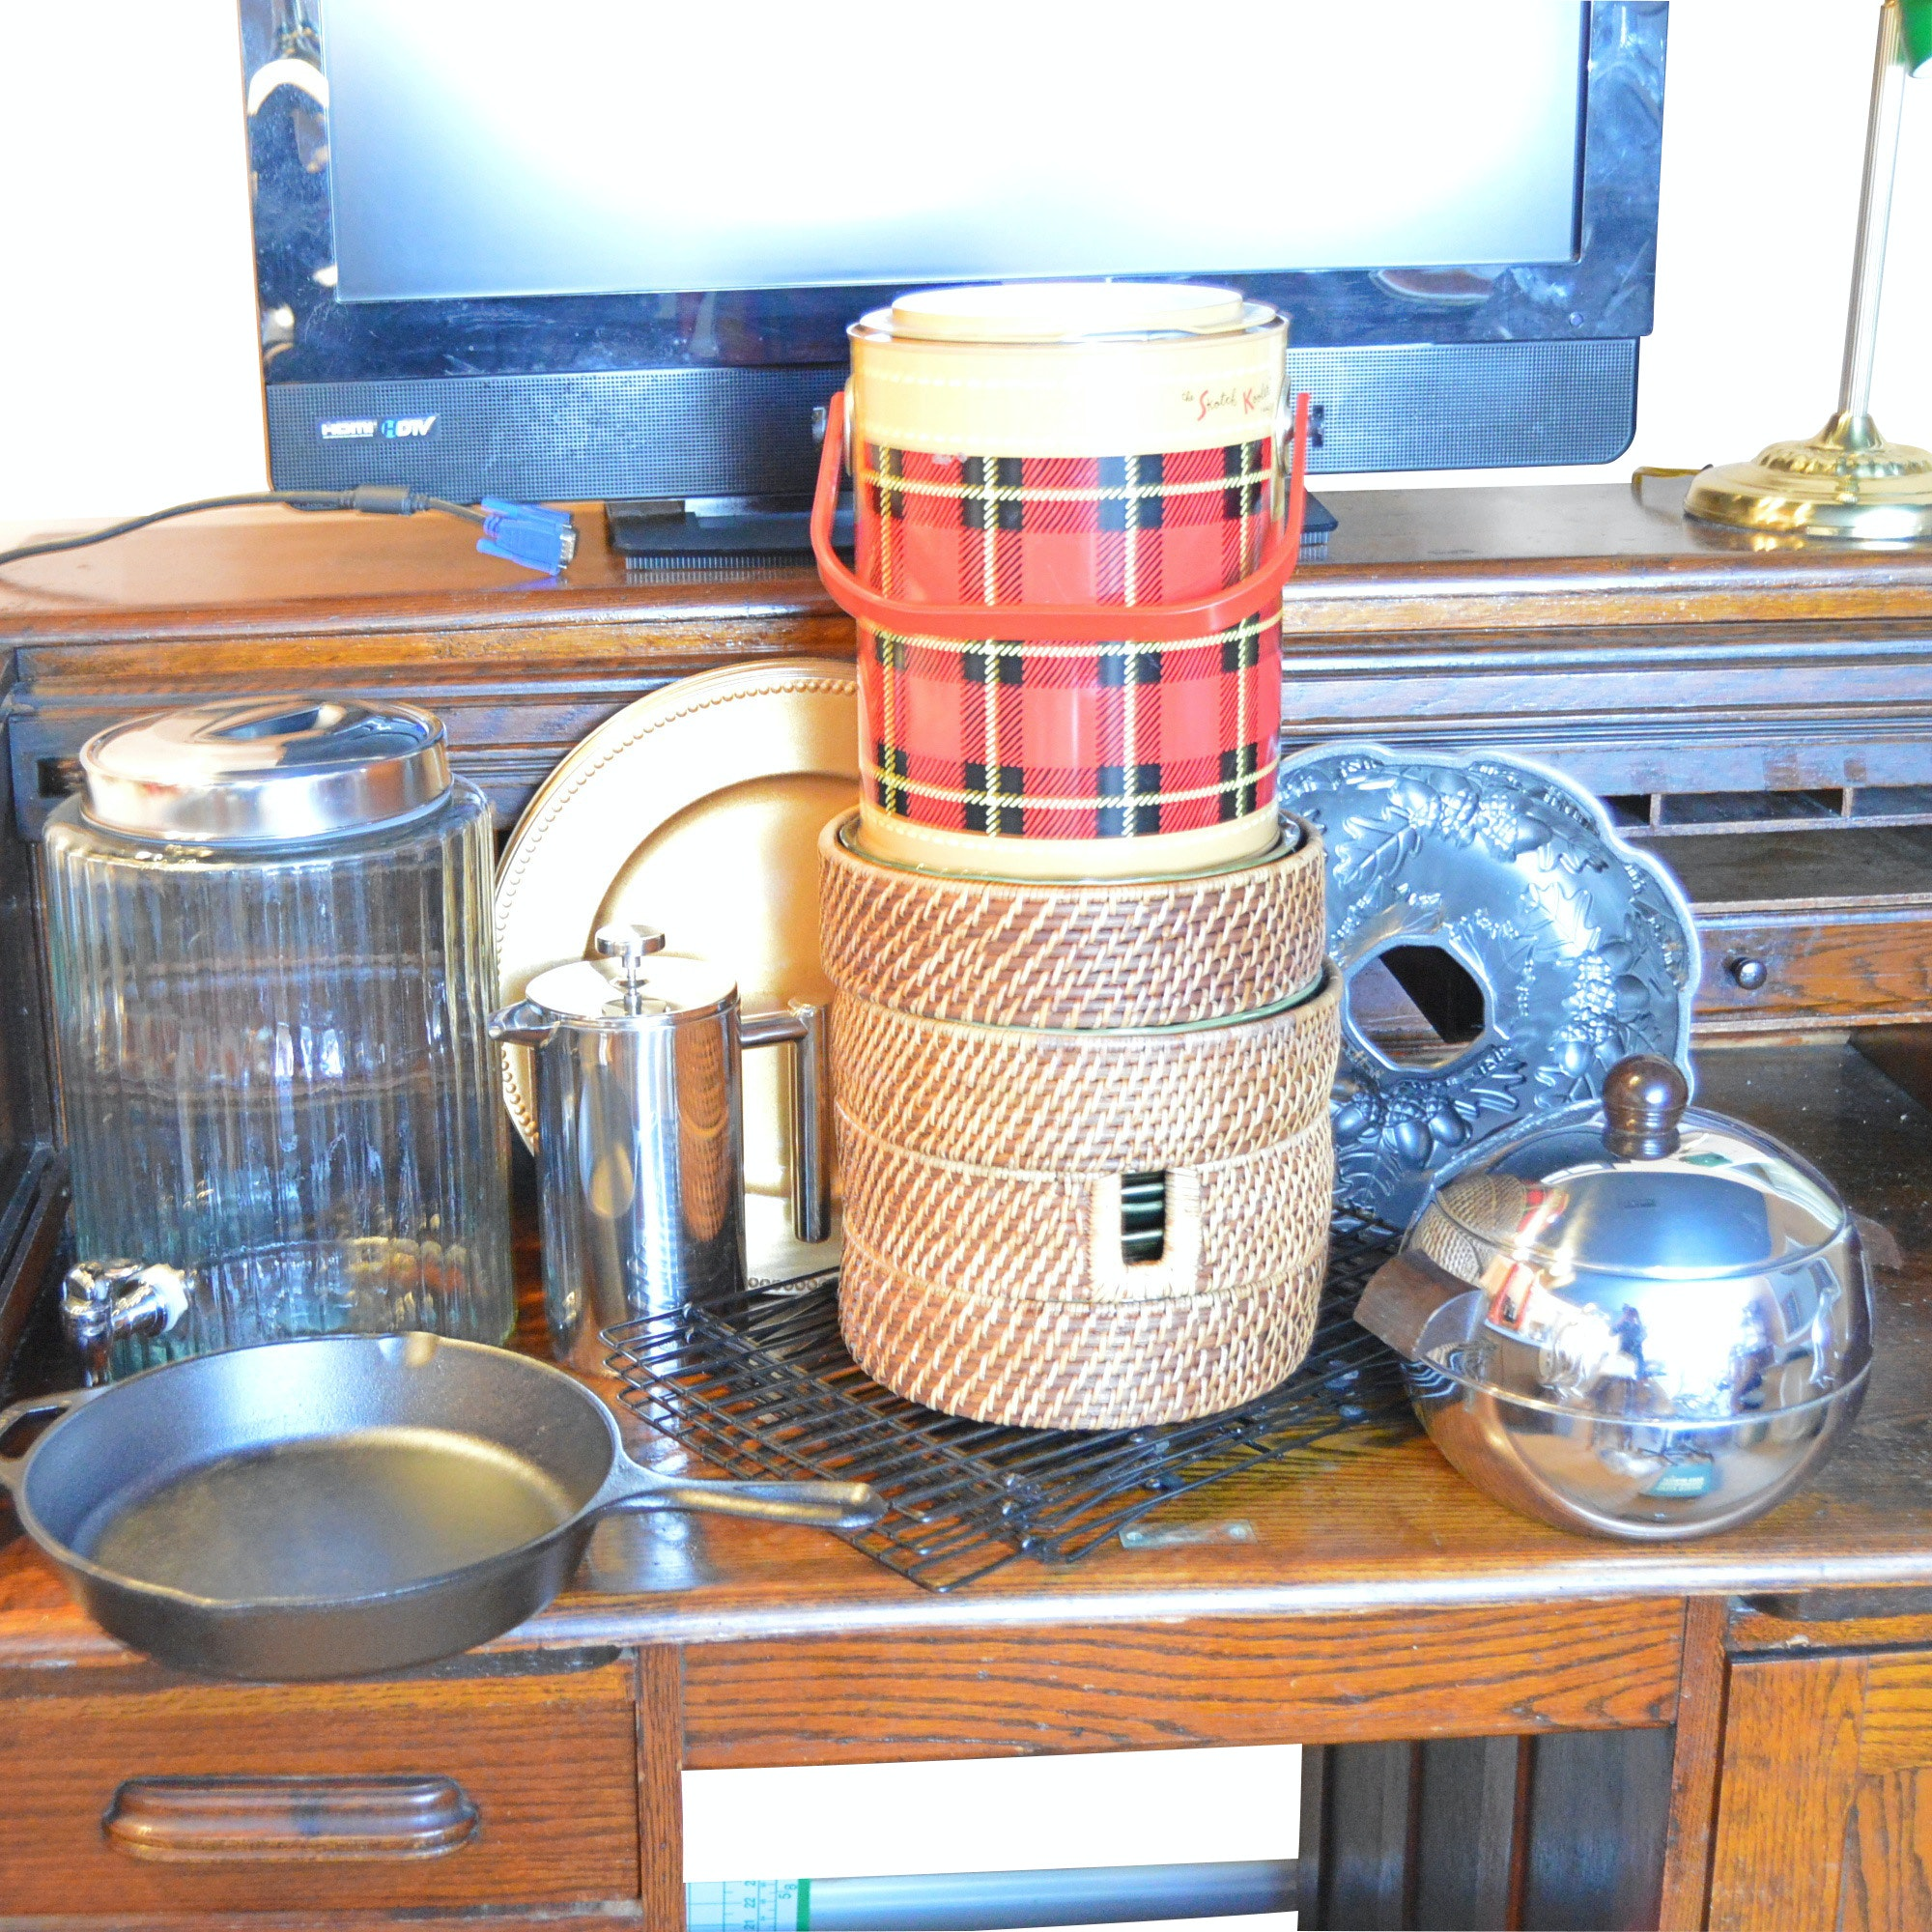 Serveware, Tableware and Bakeware with Lodge Cast Iron Pan, Vintage Cooler